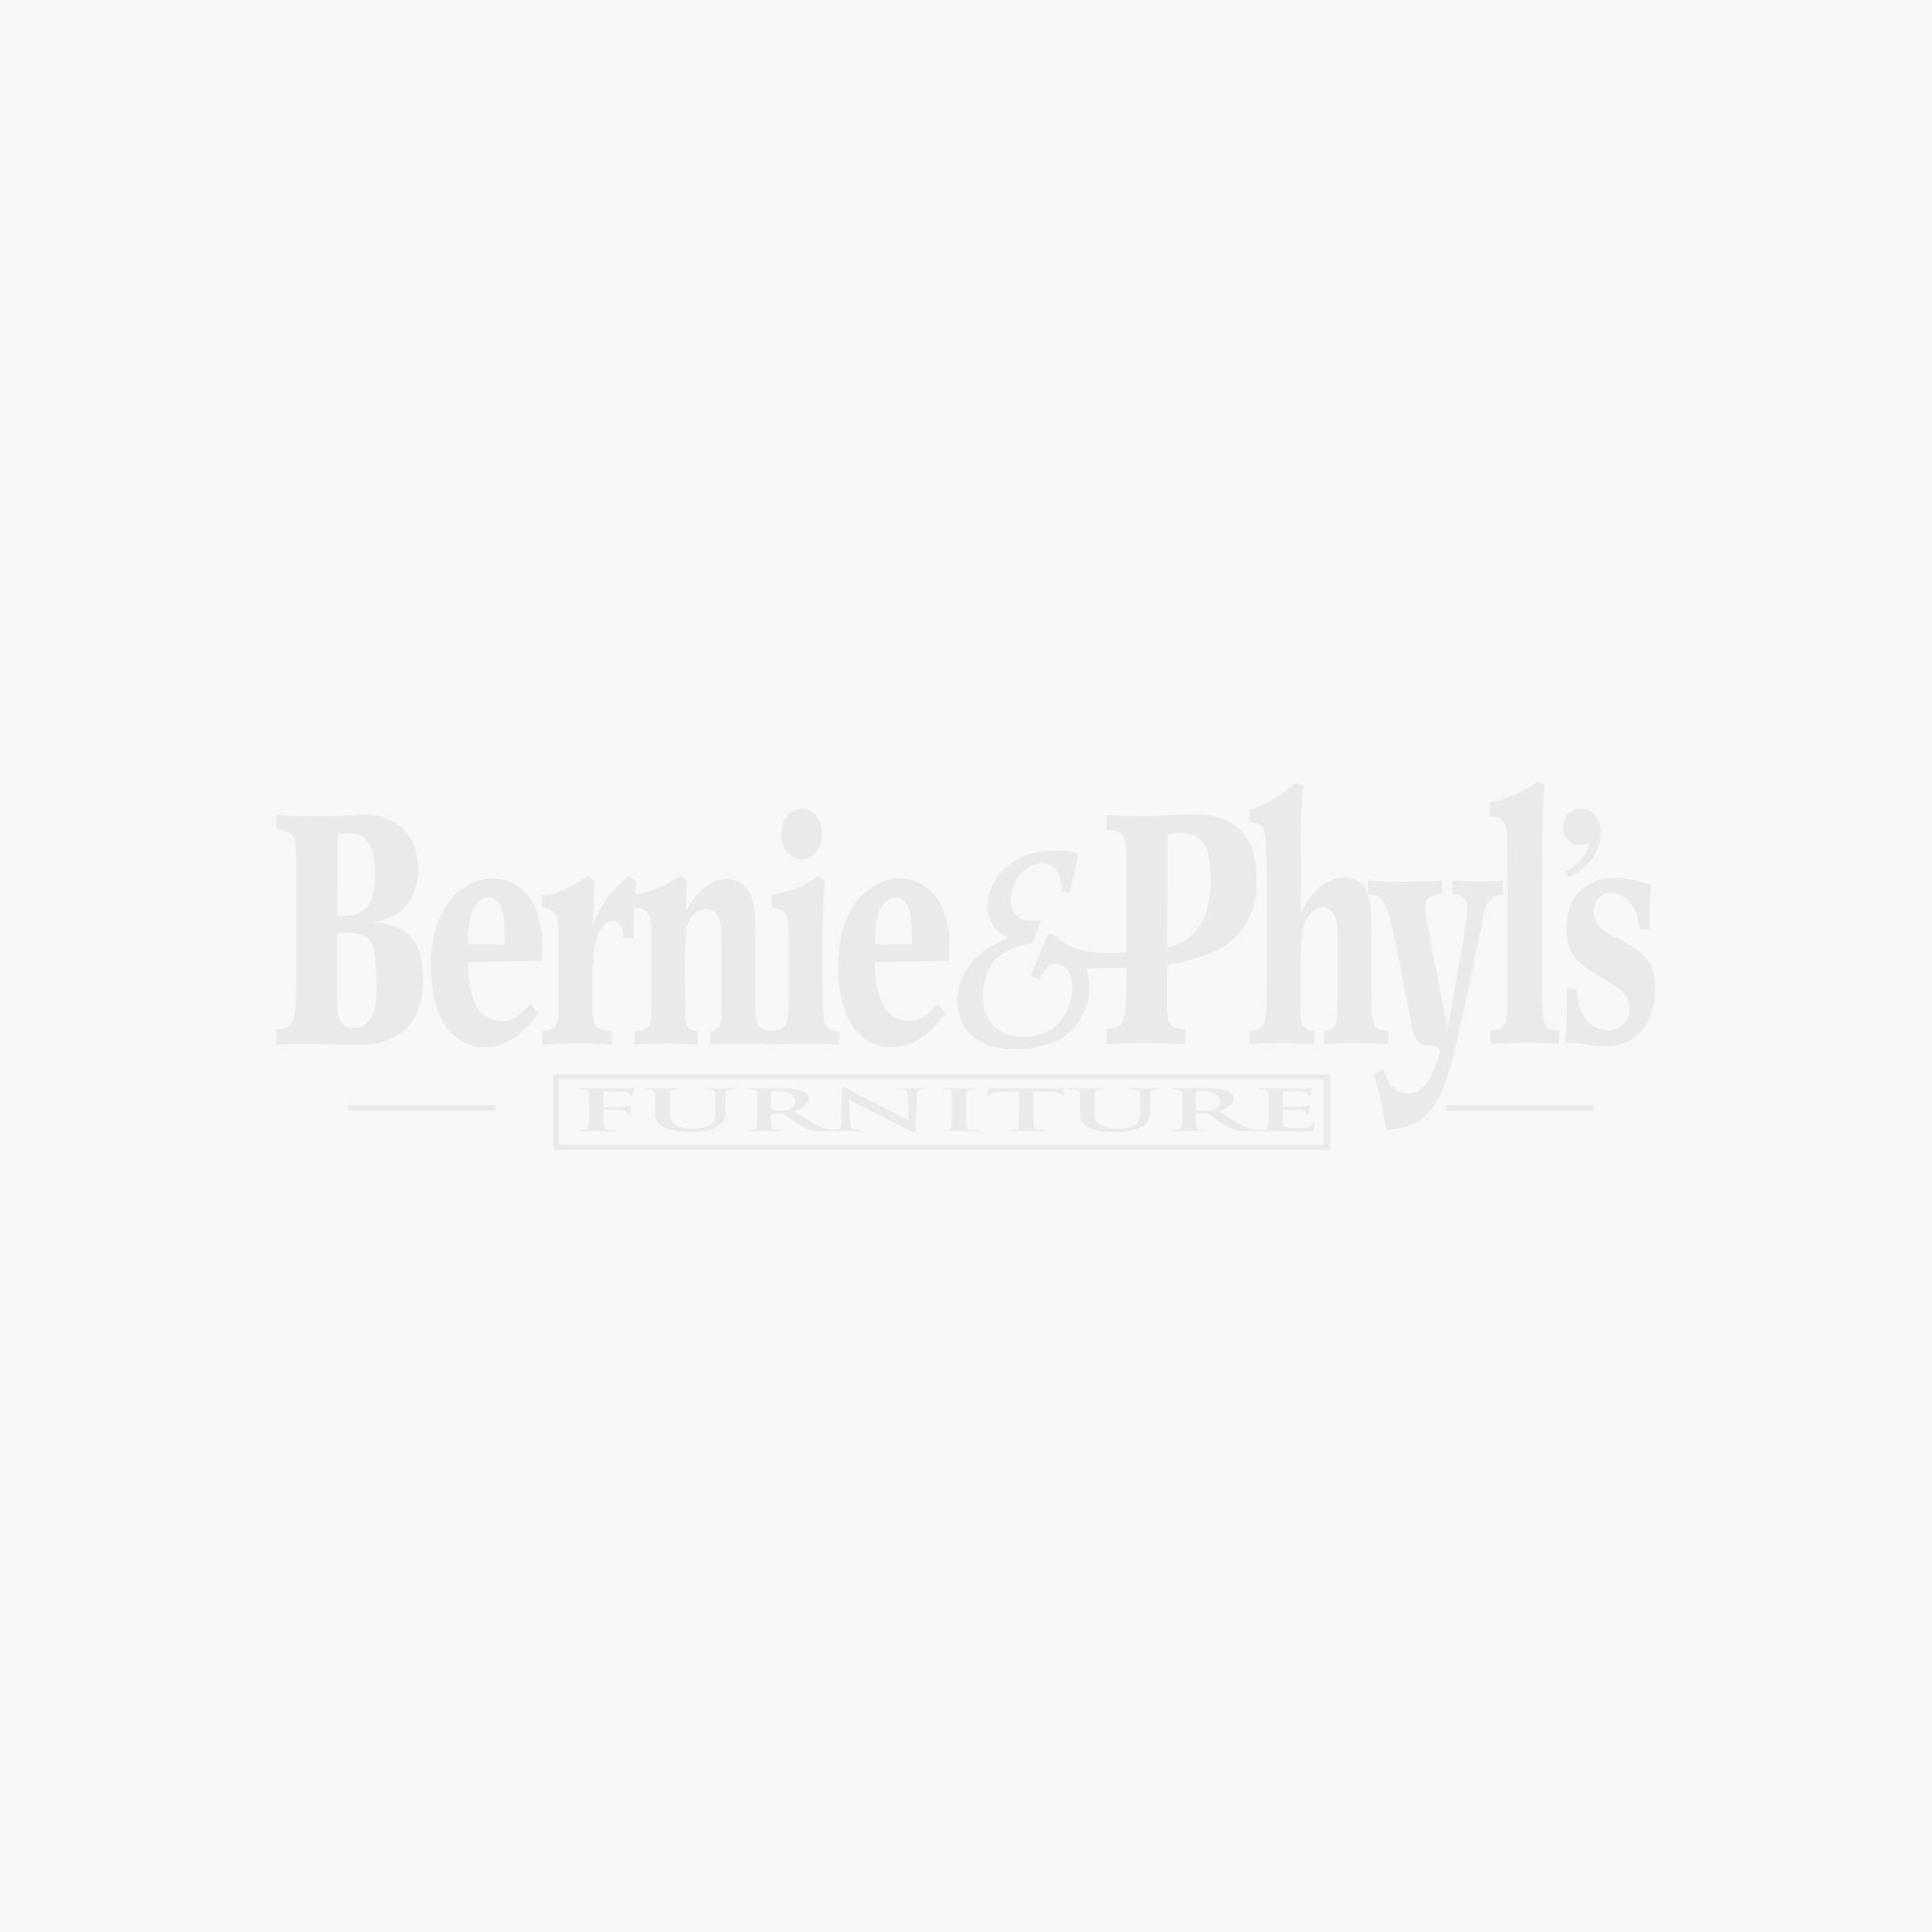 Charmond Upholstered Bed Bernie Phyl S Furniture By Ashley Furniture